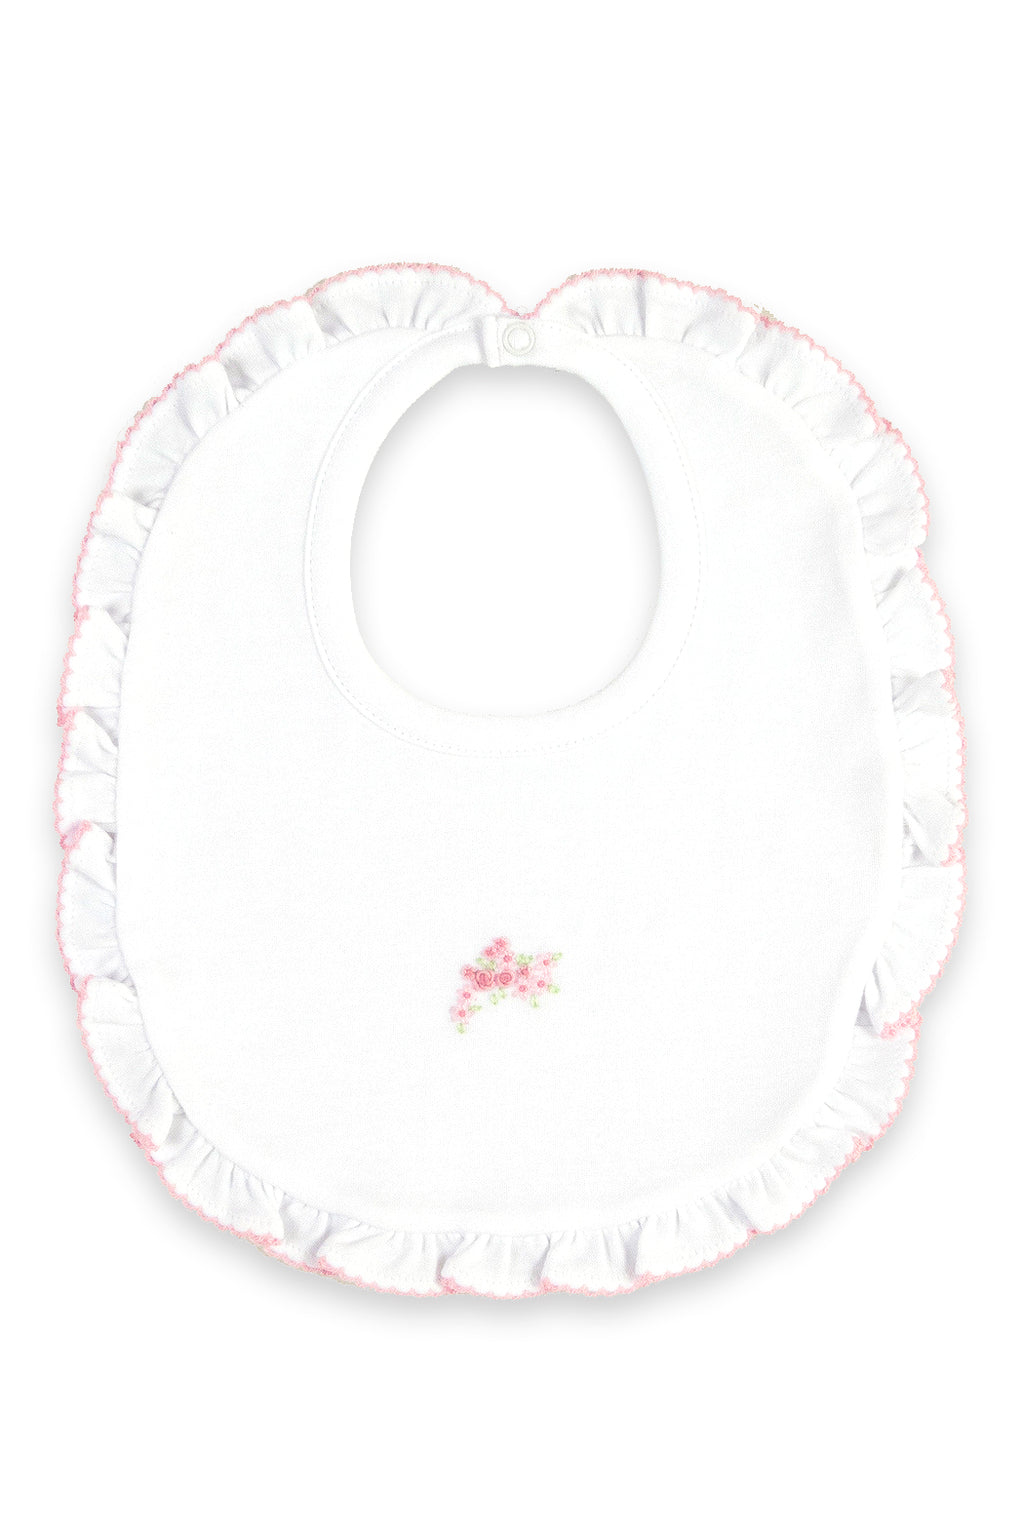 Kissy Kissy - Enchanted Garden Ruffle Bib - kkgivingtree - K&K's Giving Tree